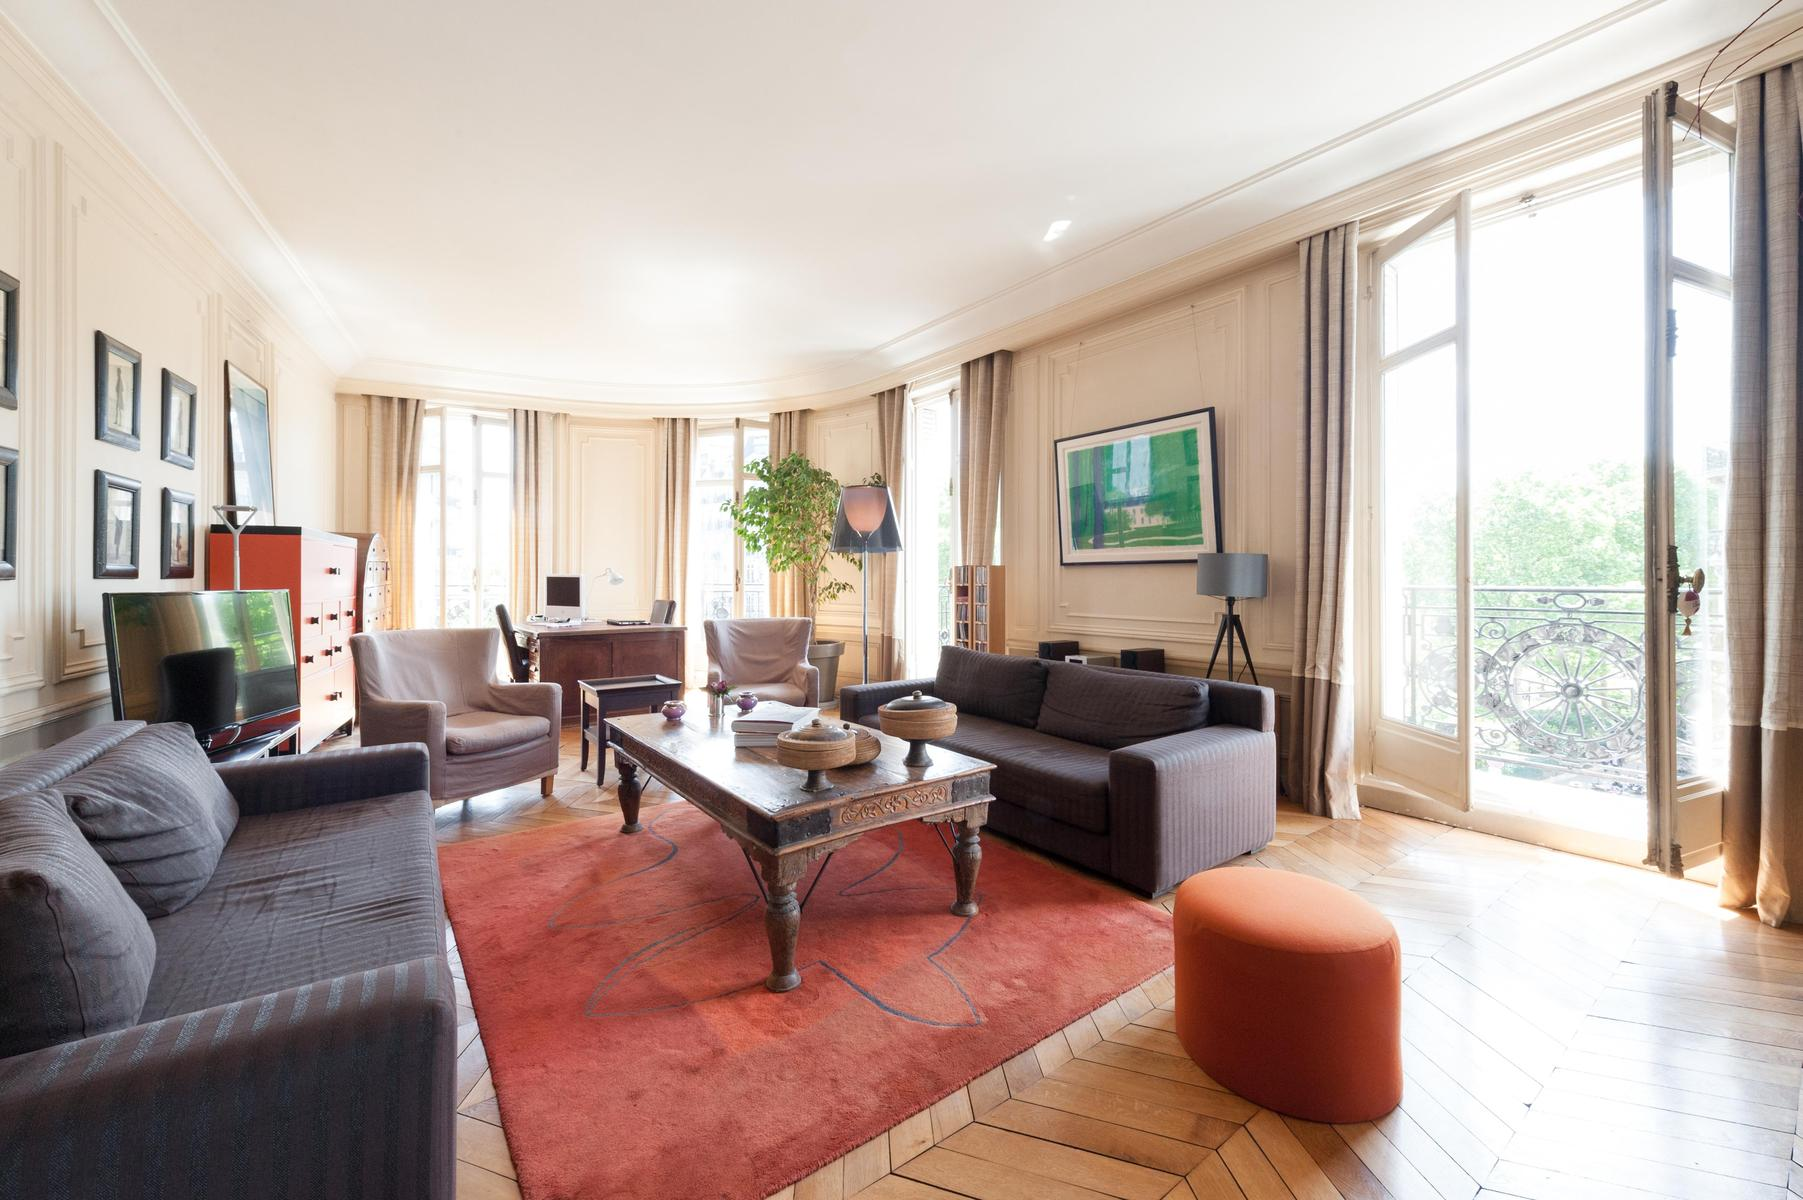 large 3-bedroom Paris luxury apartment with gry sofas and cream armchairs